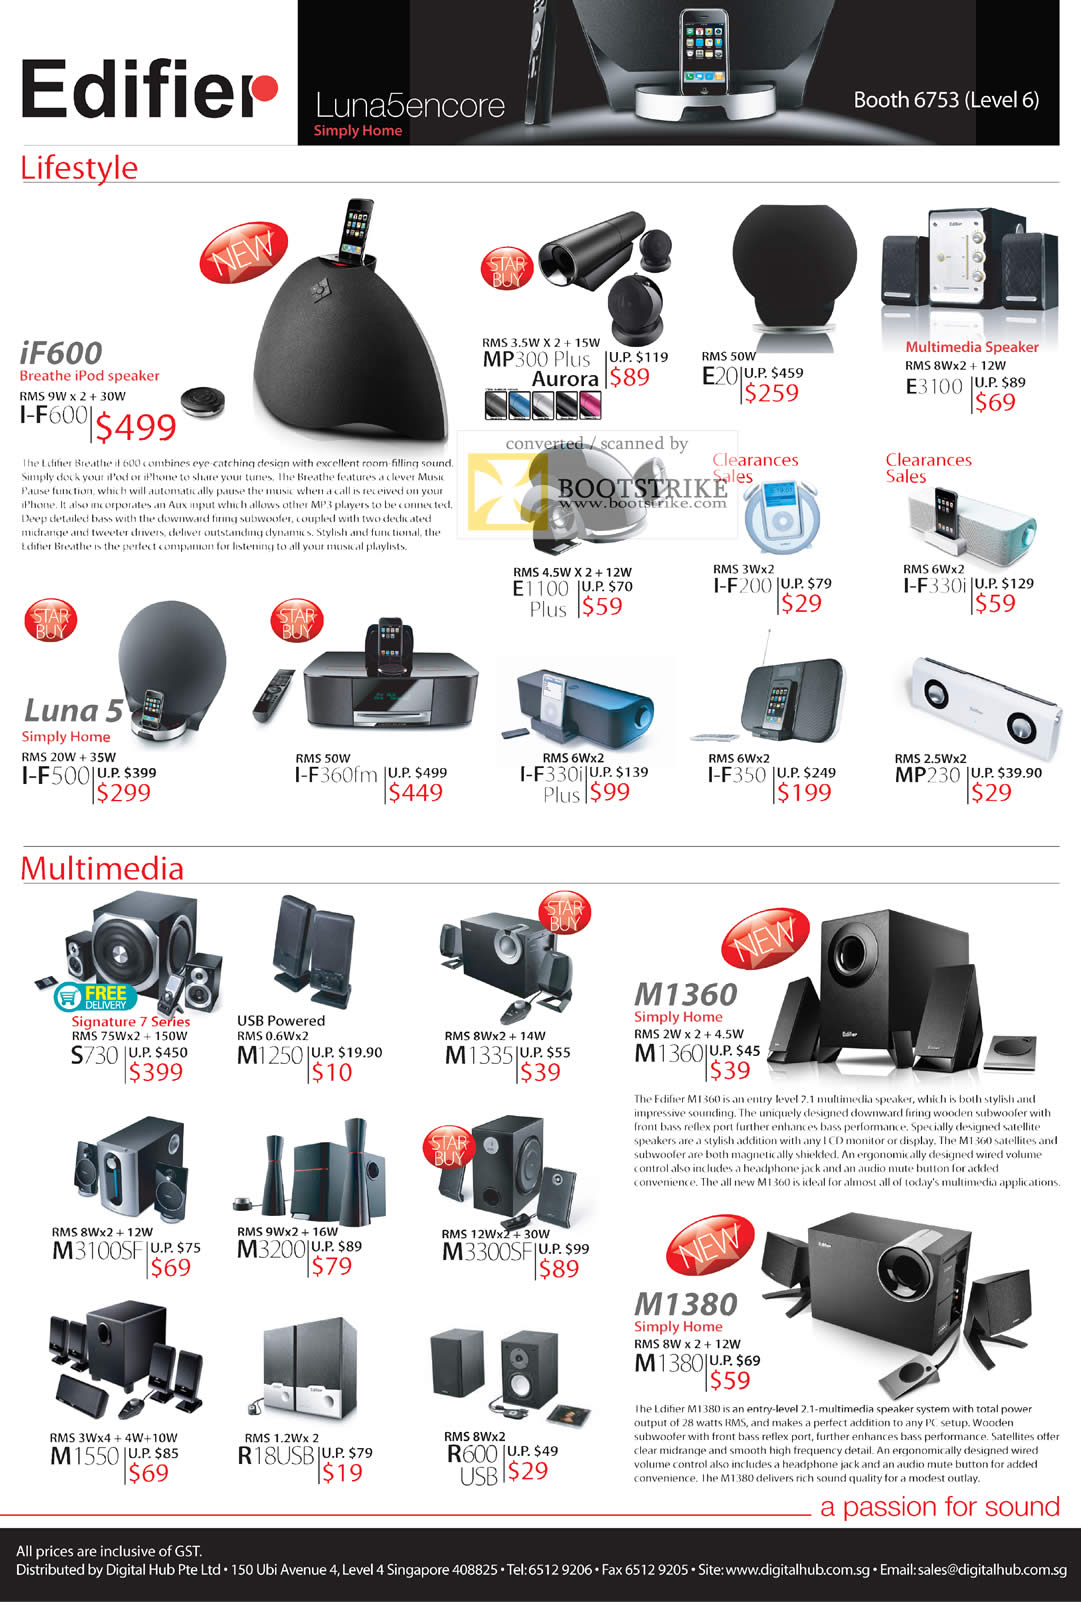 IT Show 2011 price list image brochure of Ban Leong Edifier Speakers IPod IF600 MP300 Plus E20 E3100 E1100 I-F200 I-F330i Luna 5 I-F500 Signature 7 USB M1360 M1380 M1335 M3300SF